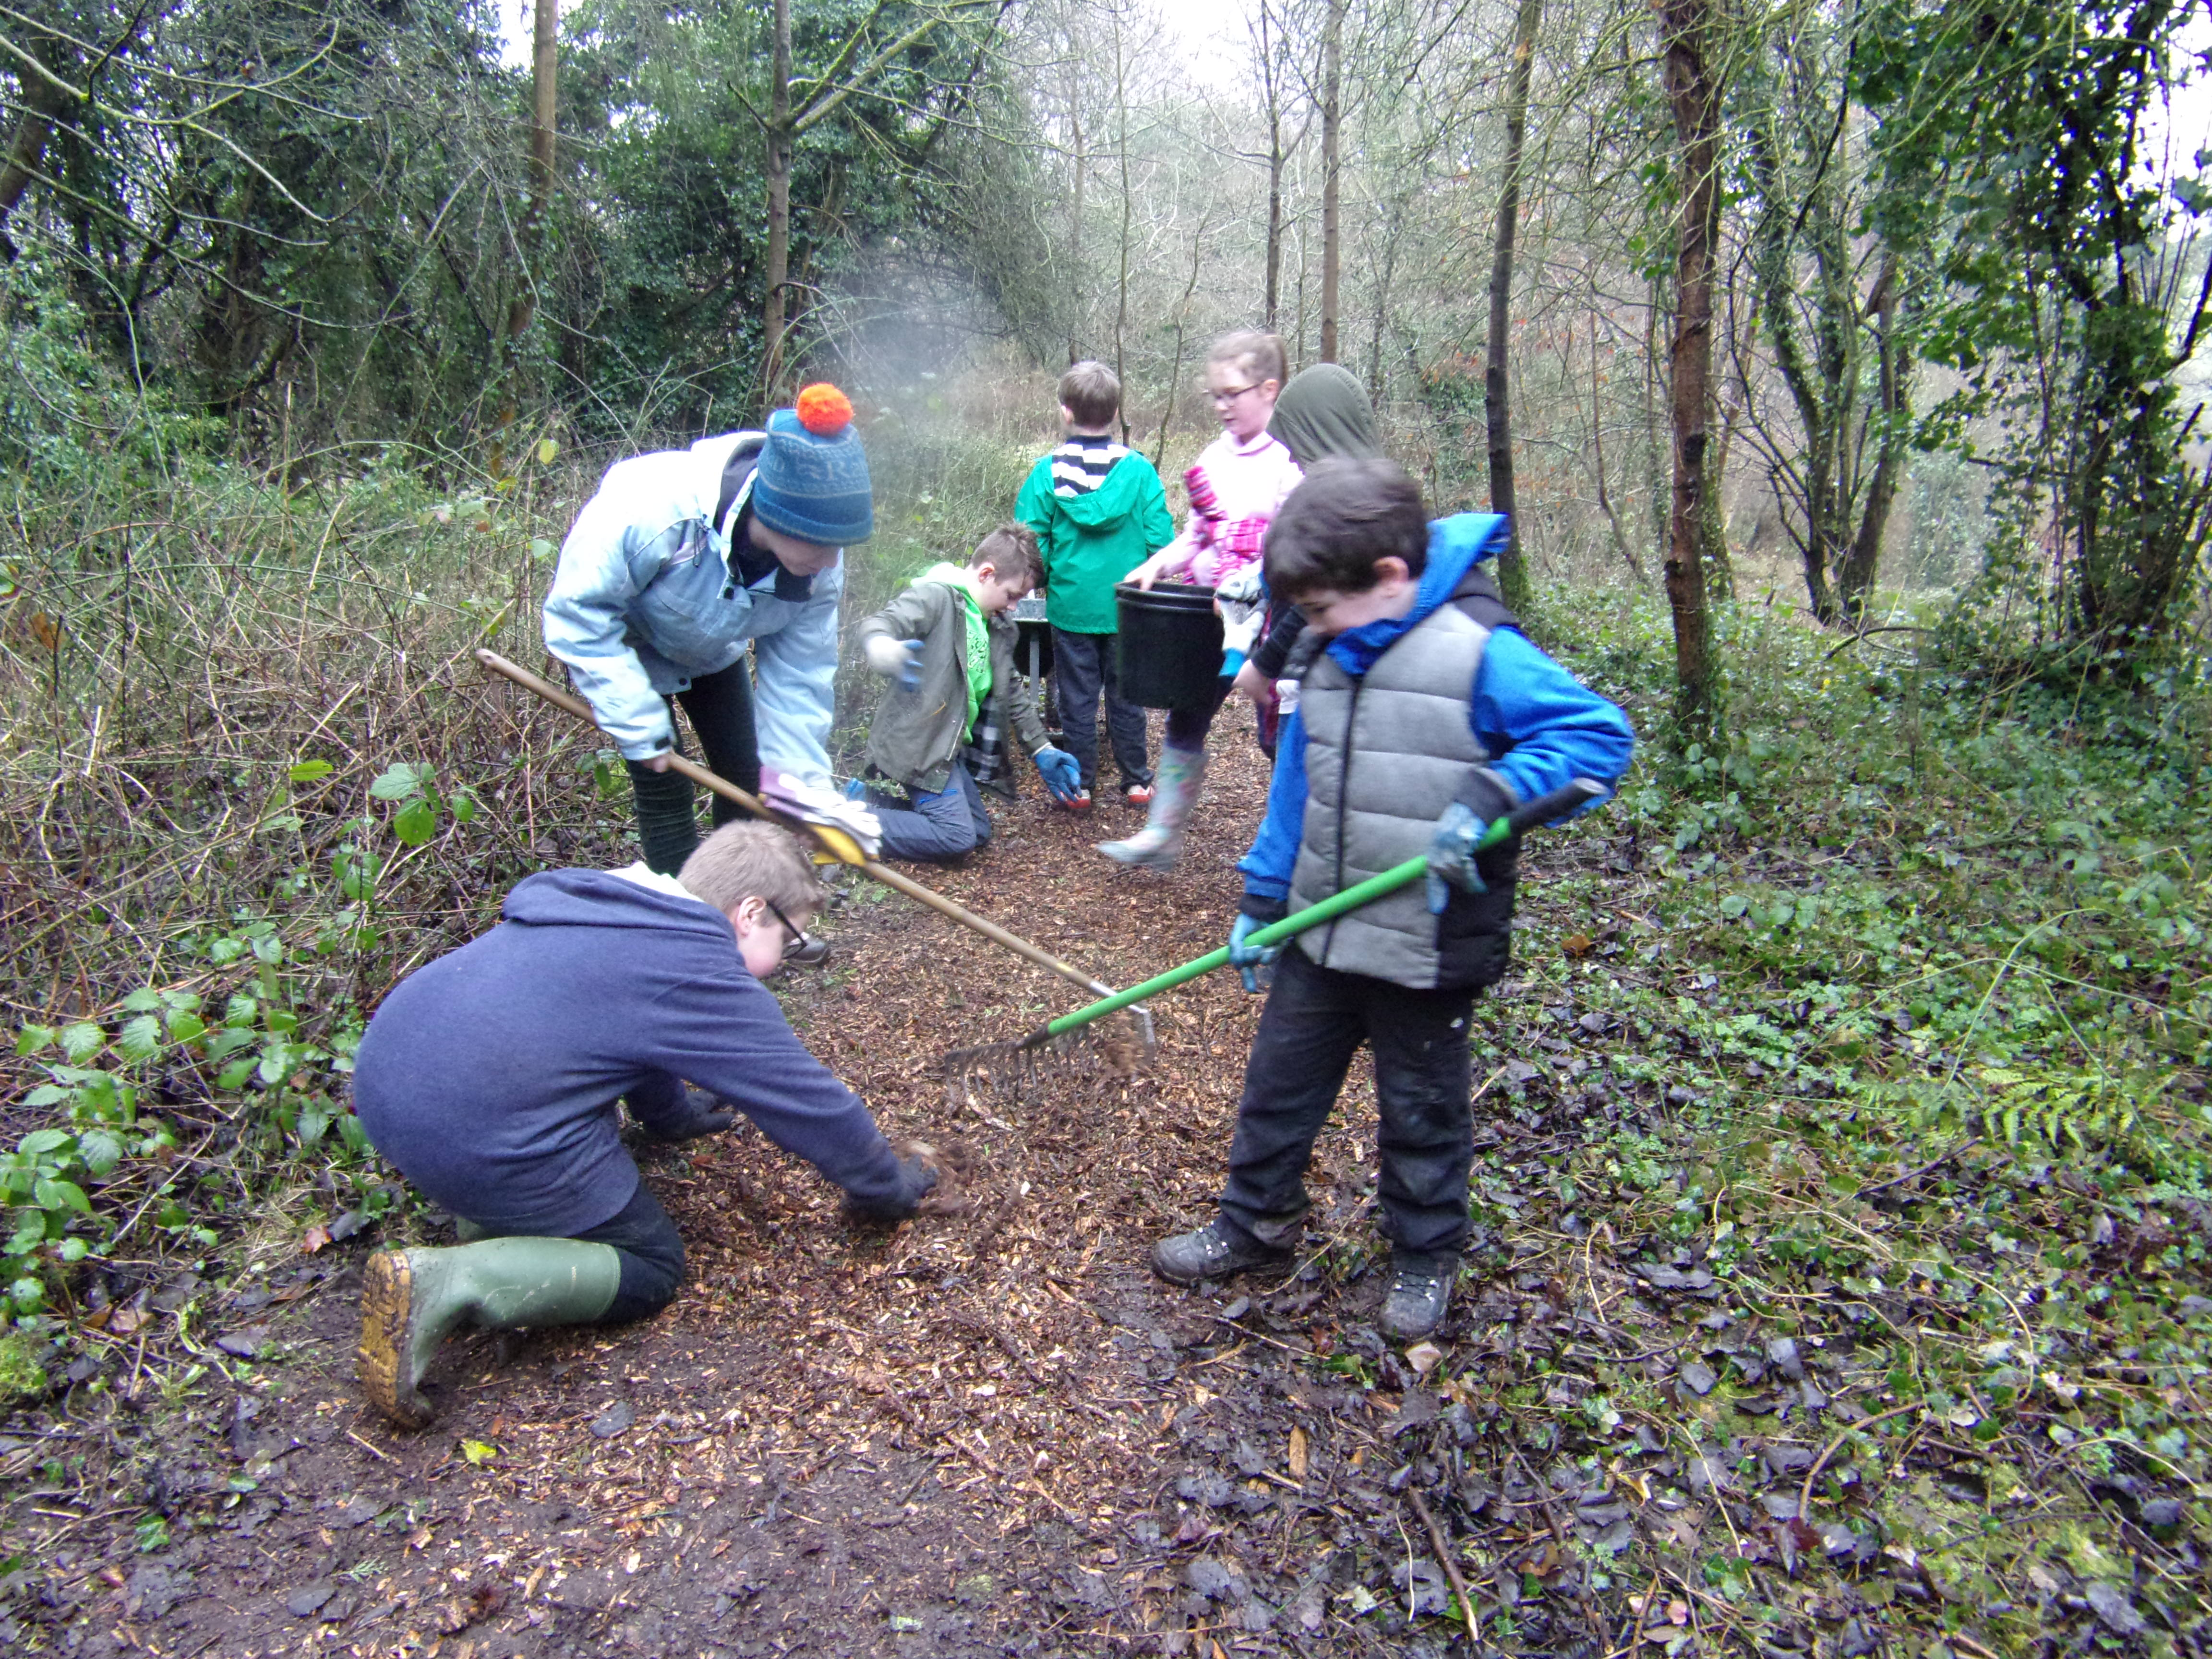 Broseley CE School children laying wood chippings